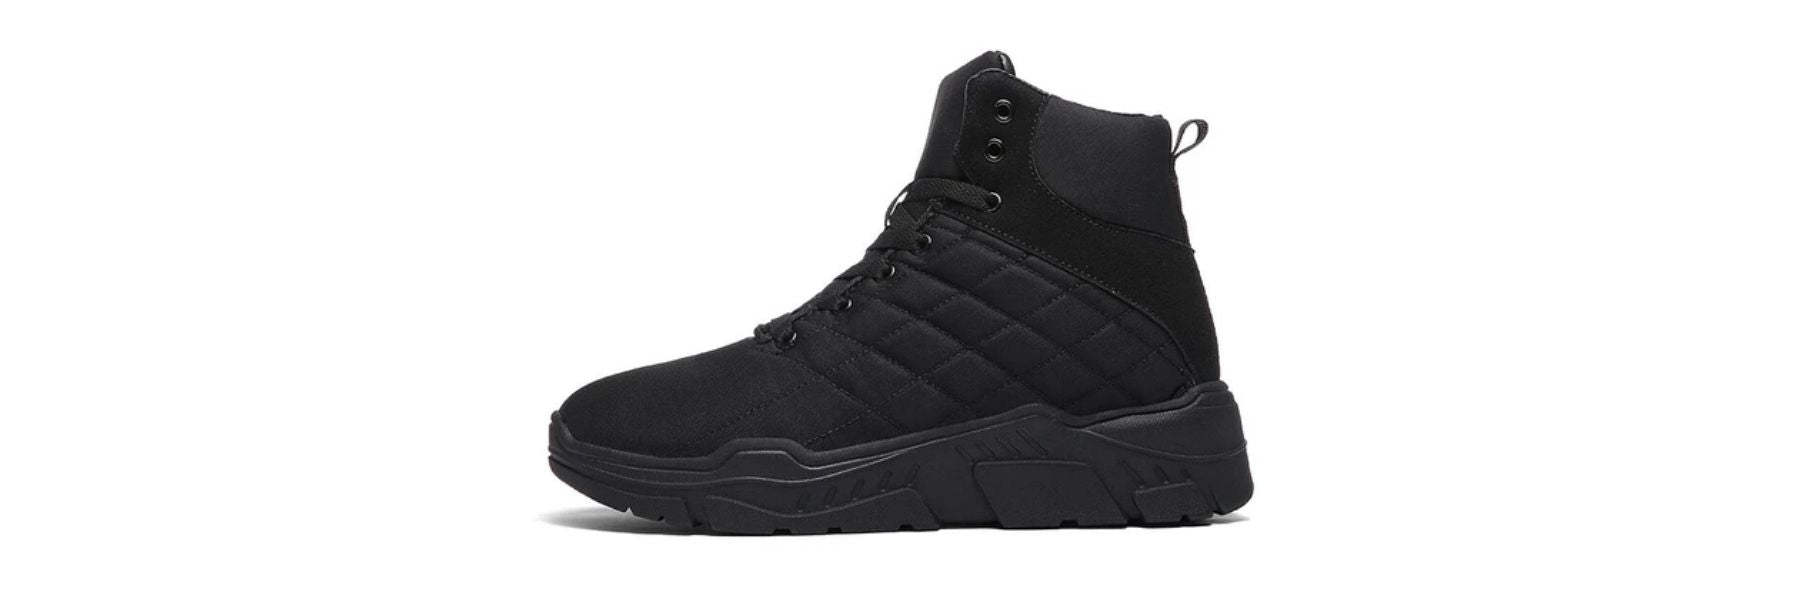 thermo tactical boots